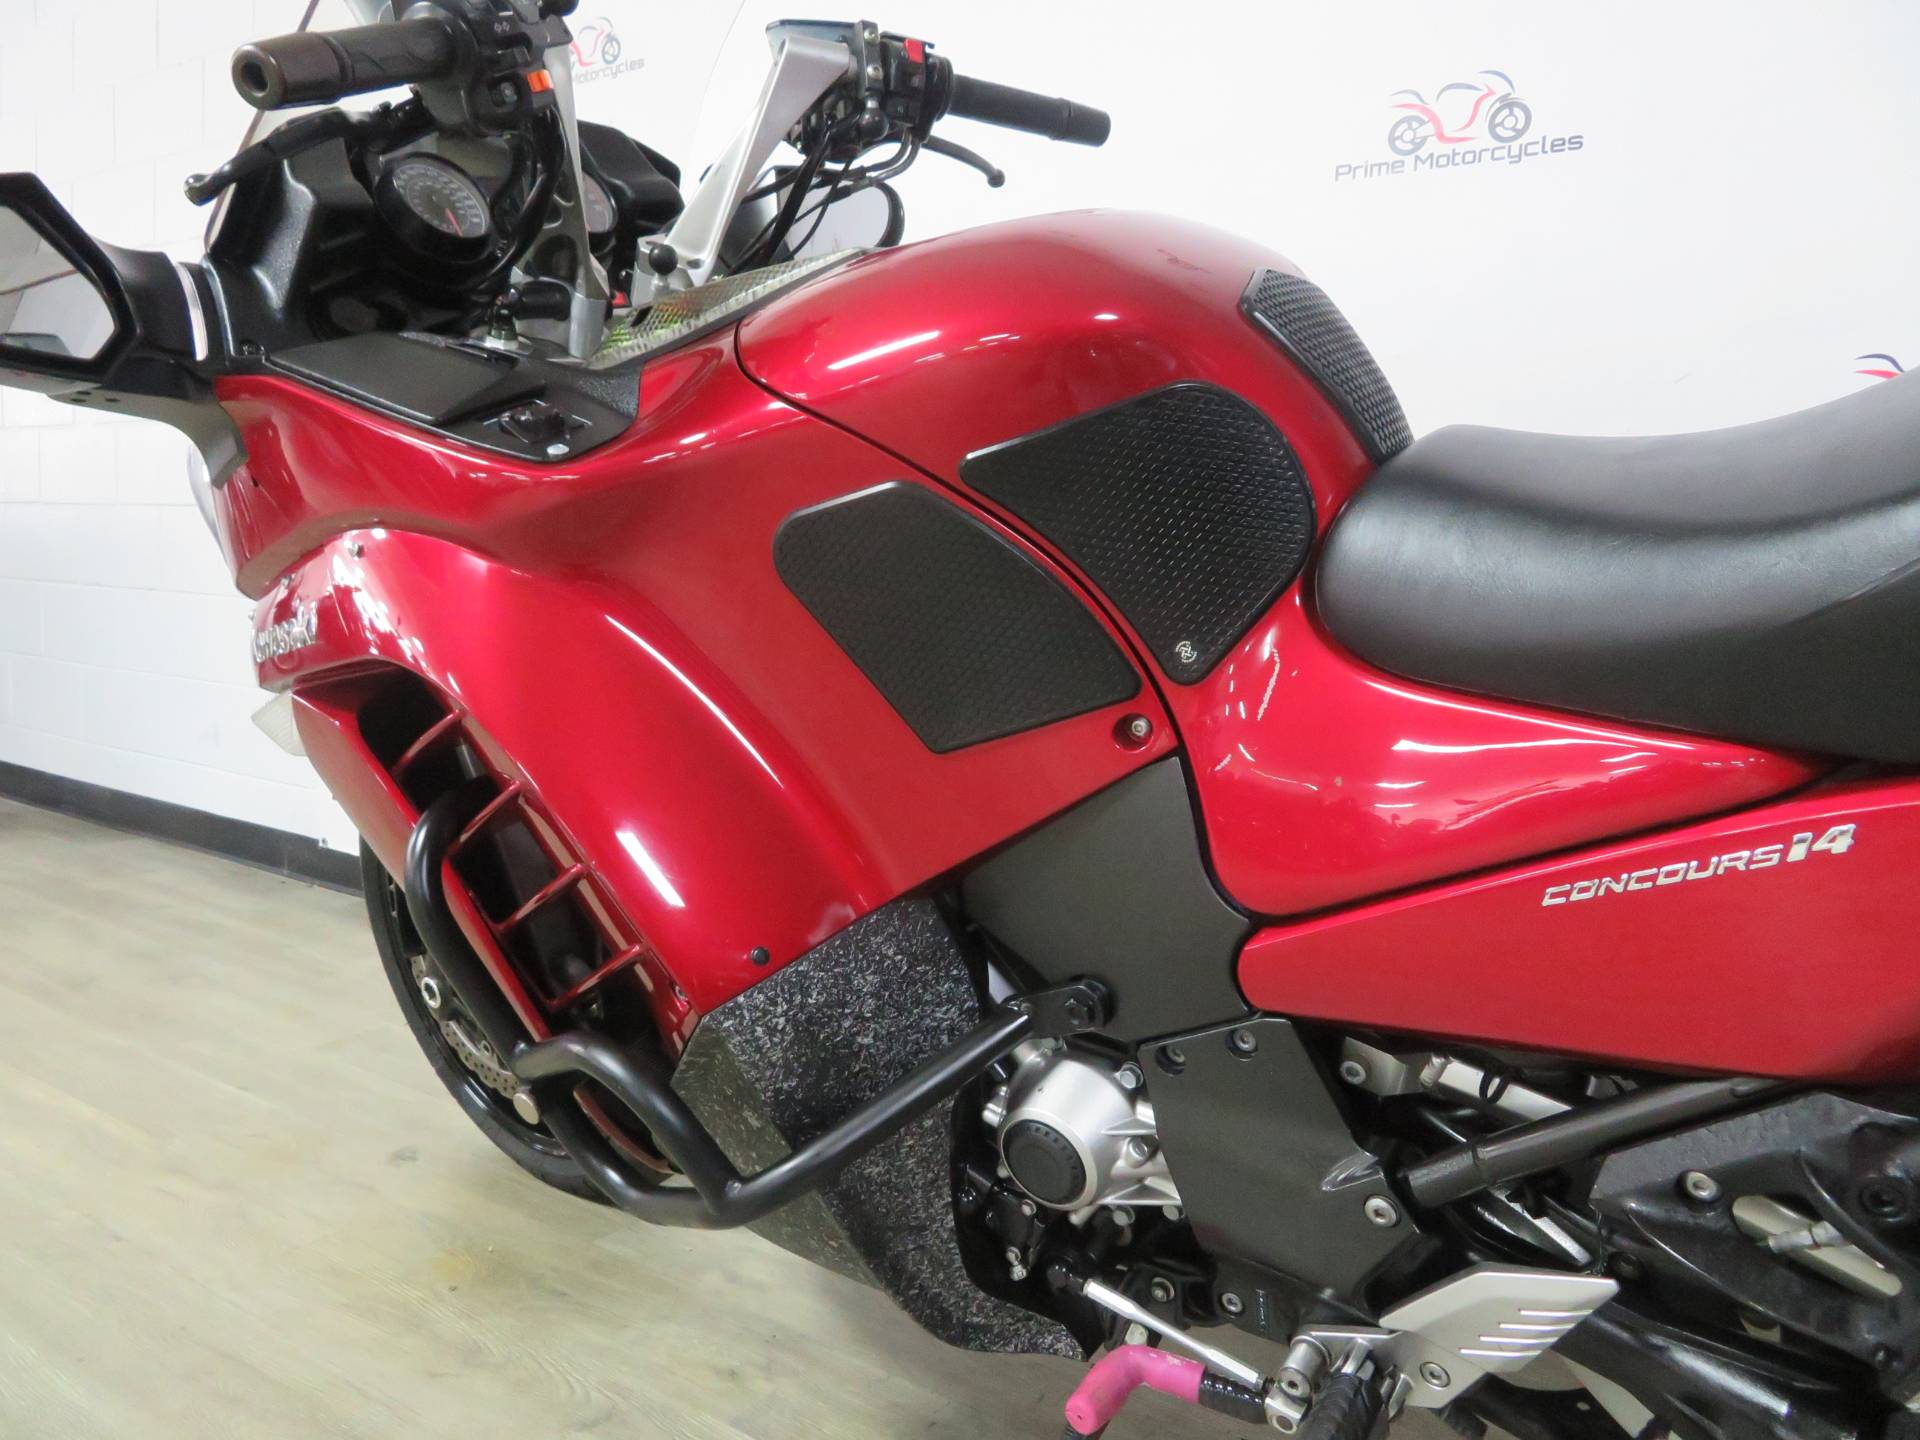 2014 Kawasaki Concours® 14 ABS in Sanford, Florida - Photo 12